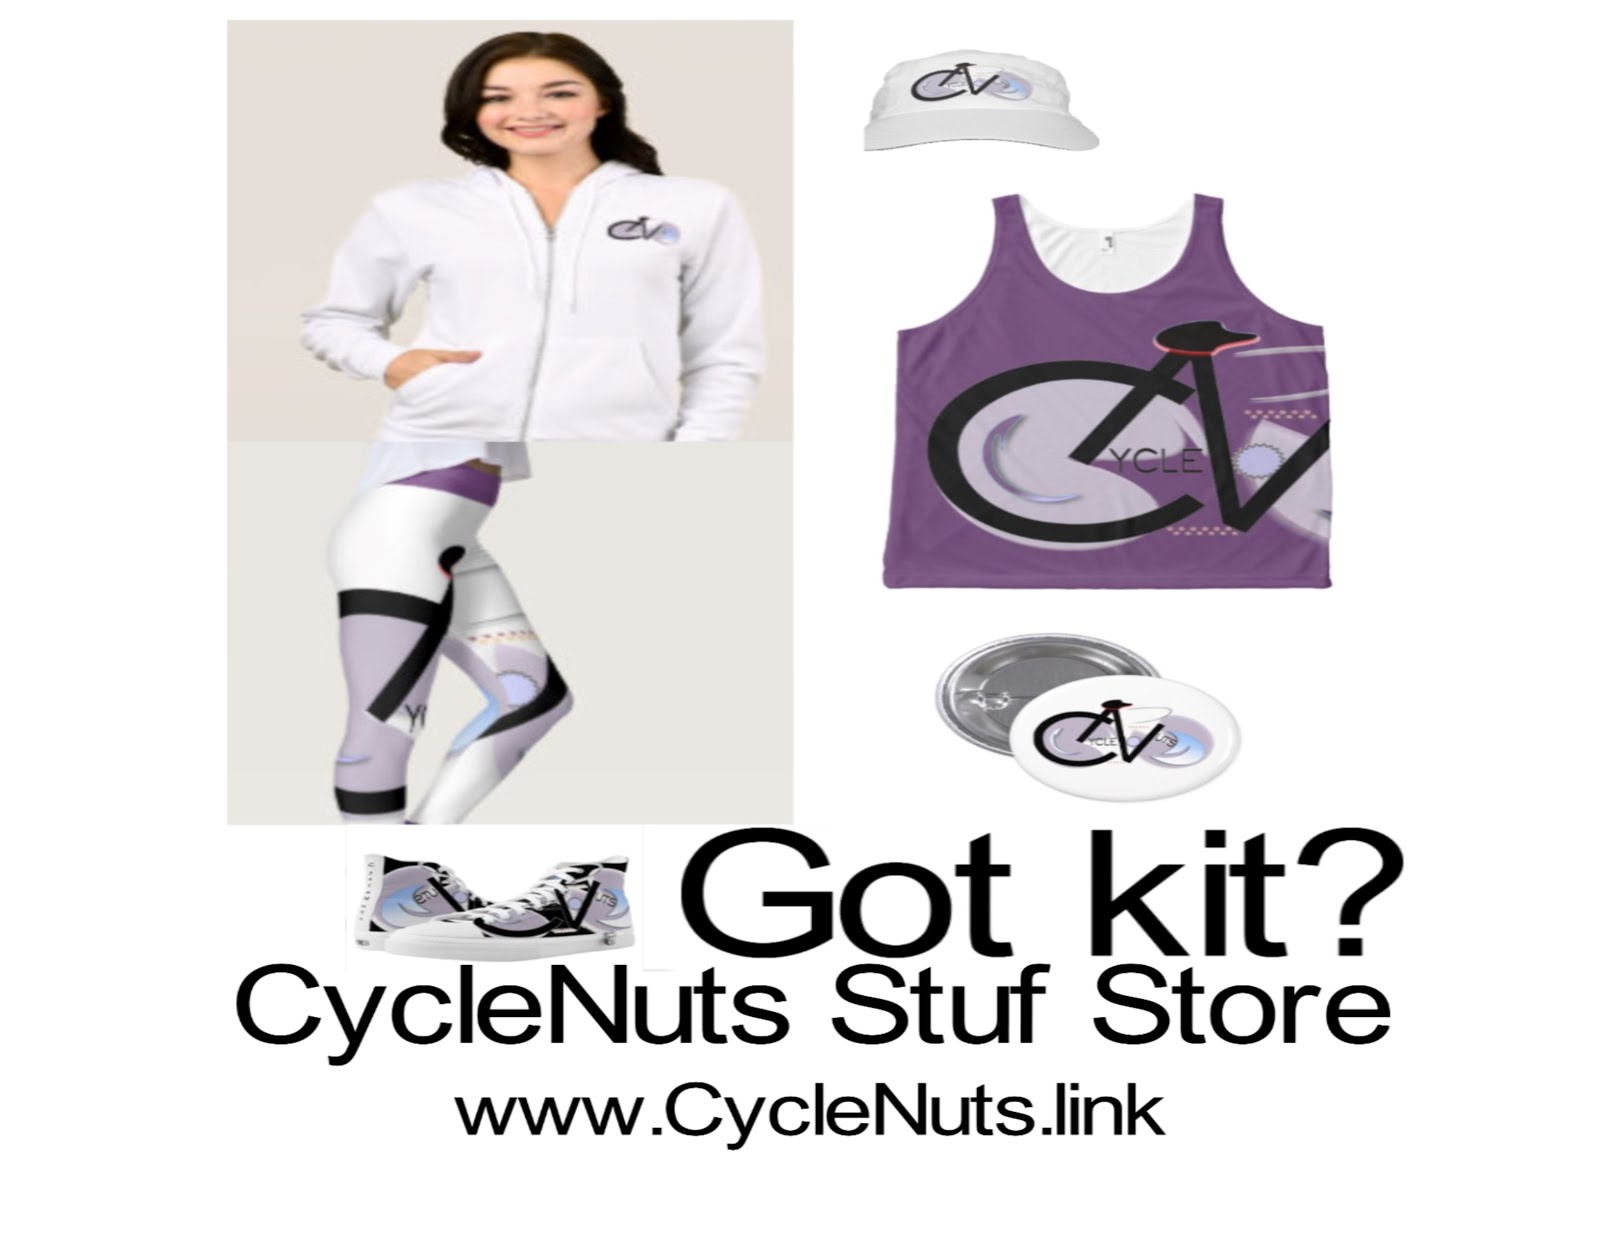 CycleNuts Stuf Store